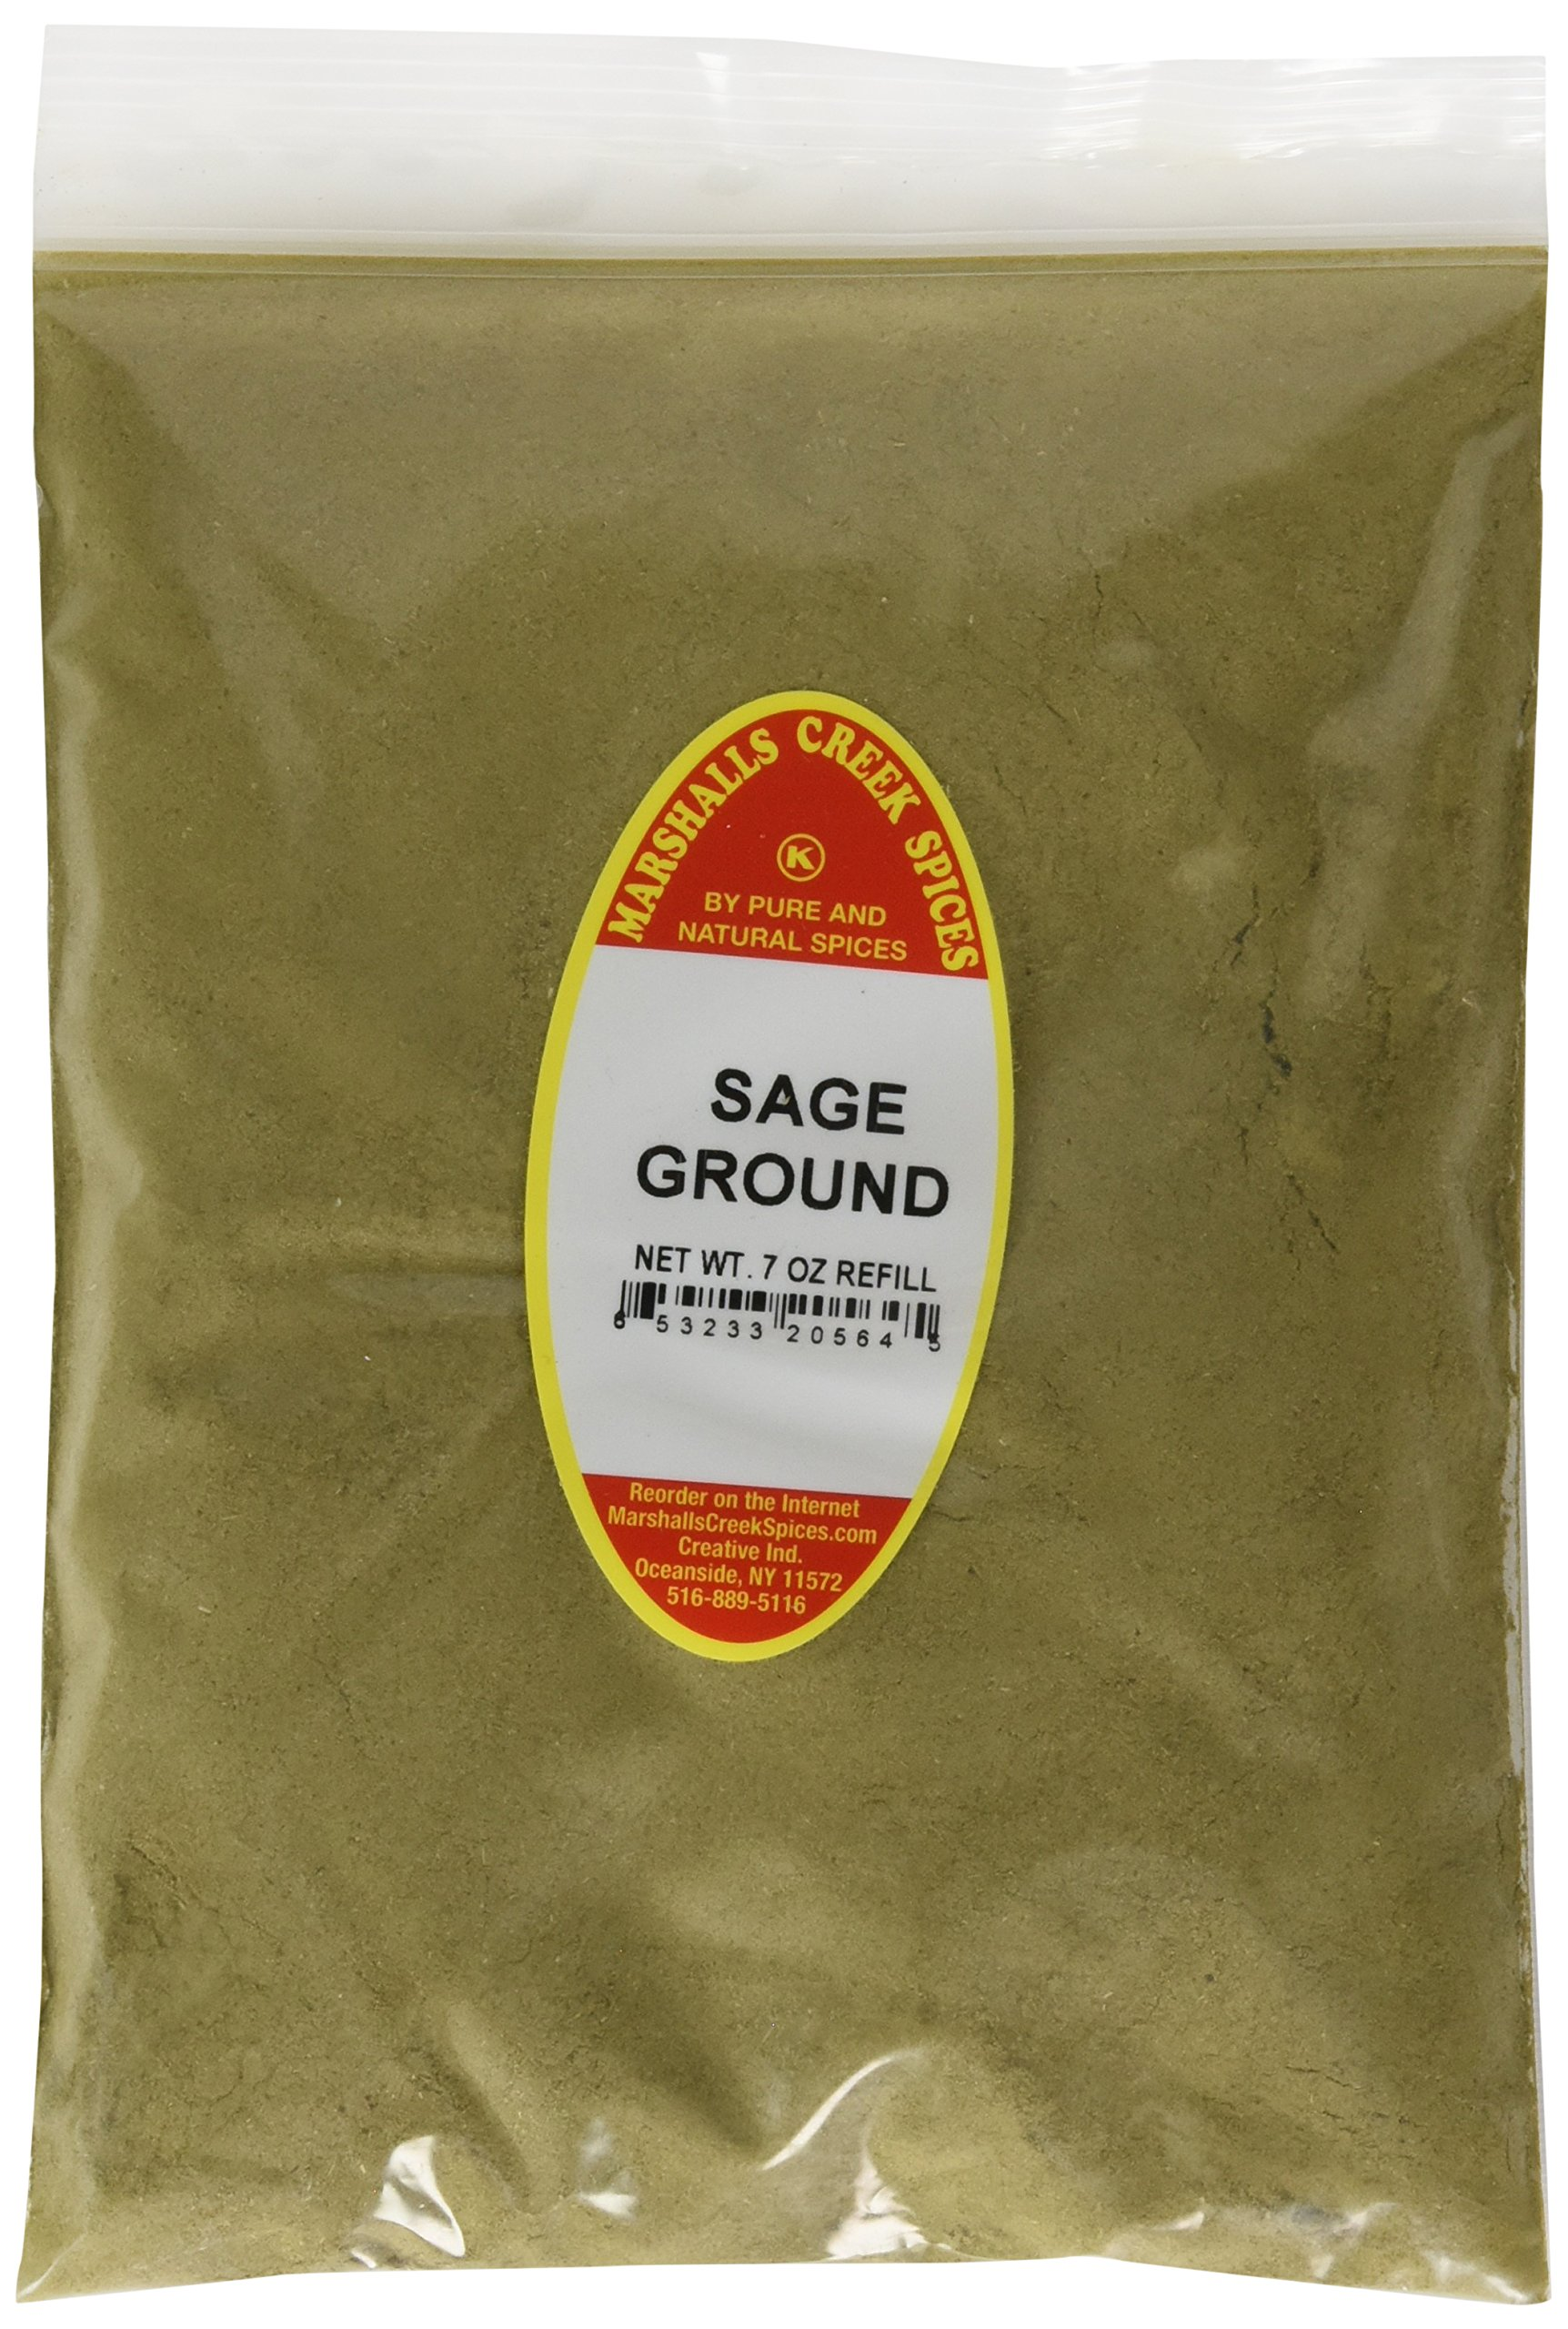 Marshalls Creek Spices Kosher Sage Ground Refill, 7 Ounce